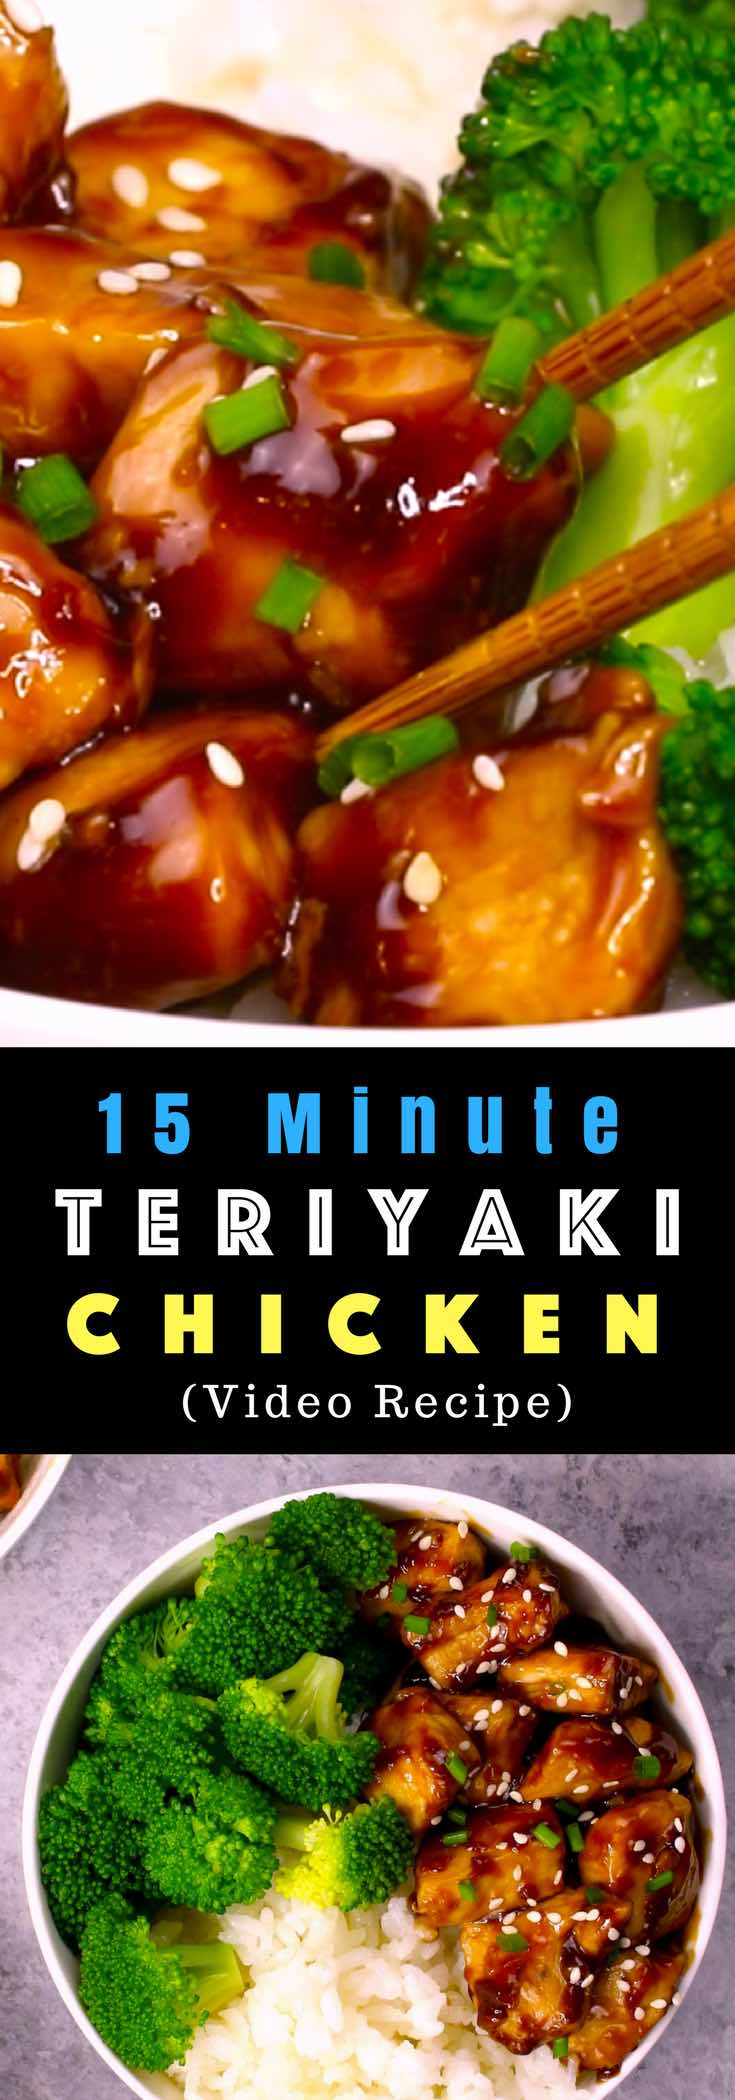 The easiest, most unbelievably delicious Teriyaki Chicken with Rice Bowls. And it'll be on your dinner table in just 15 minutes. It's much better than takeout! All you need is only a few ingredients: chicken breast, soy sauce, cider vinegar, honey and cornstarch. One of the best Asian dinner ideas! Served with rice and broccoli. Quick and easy dinner recipe. Video recipe. | Tipbuzz.com #Teriyaki #TeriyakiChicken #ChickenTeriyaki